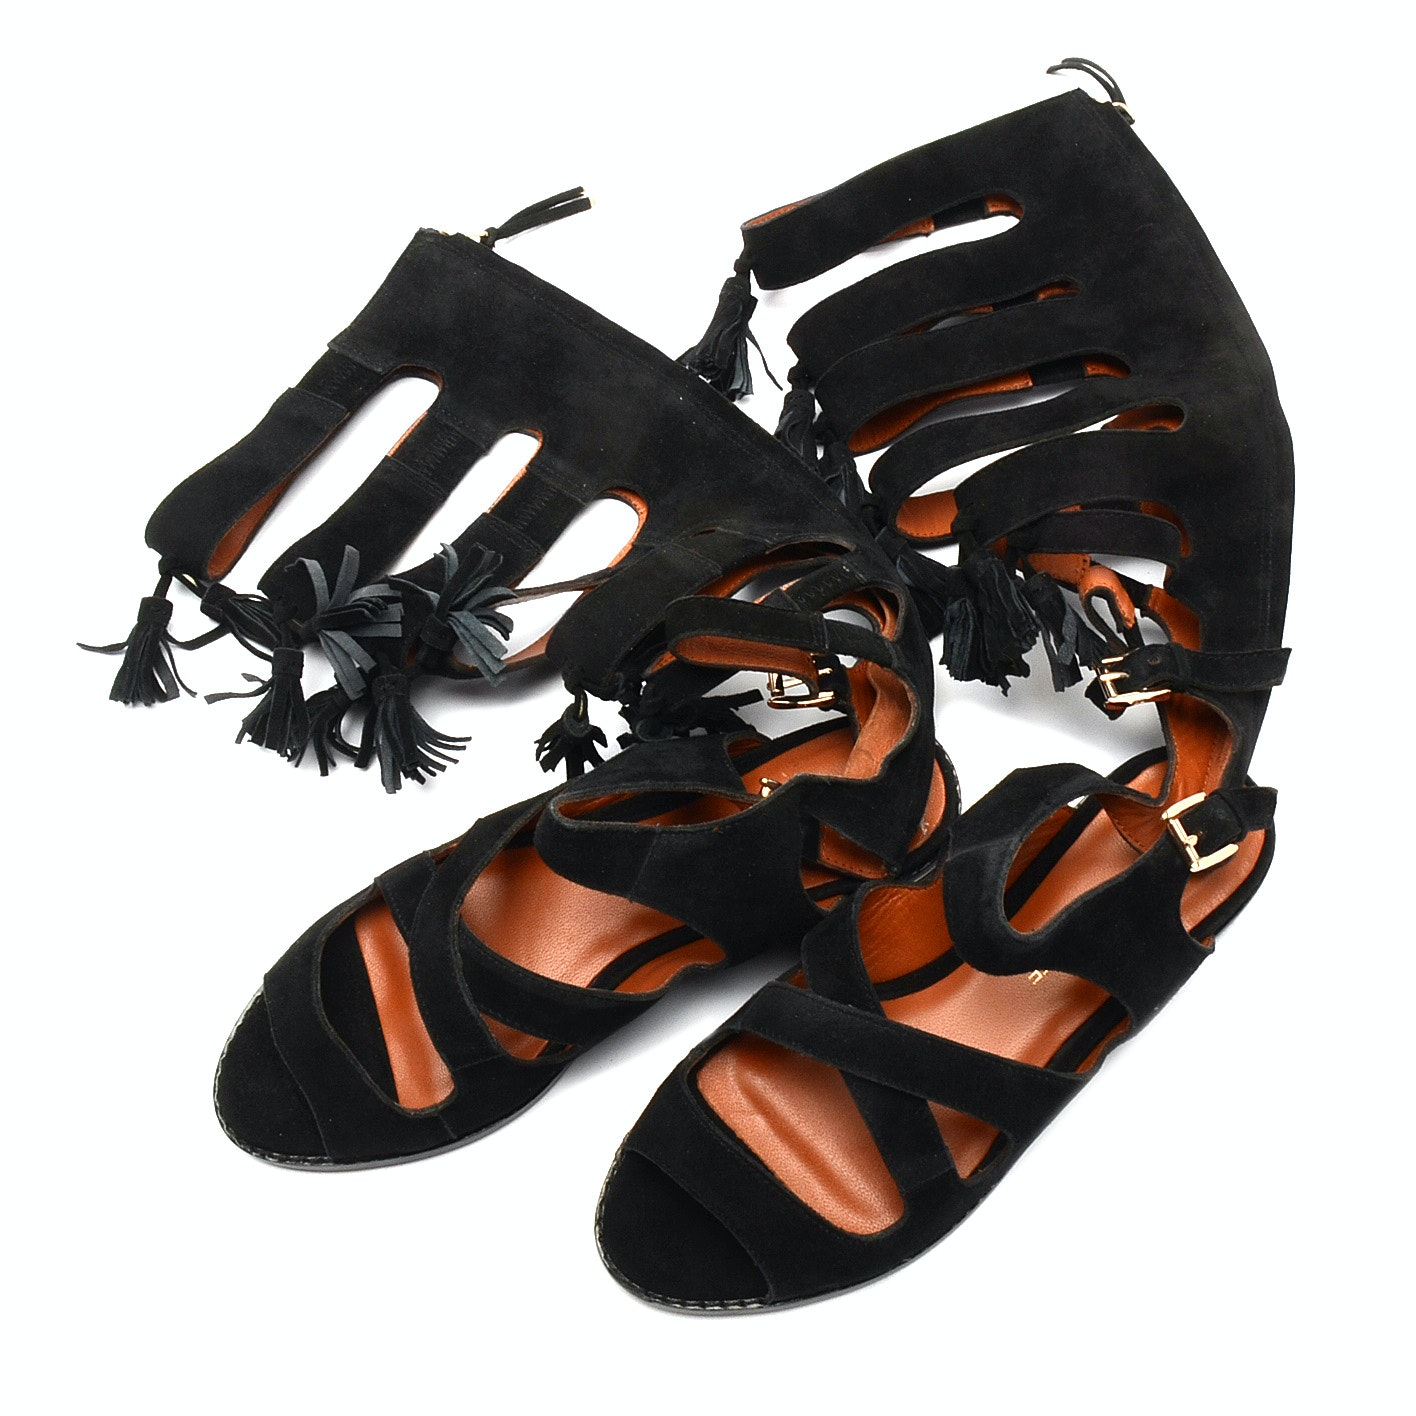 Suede Gladiator Sandals by Rebecca Minkoff